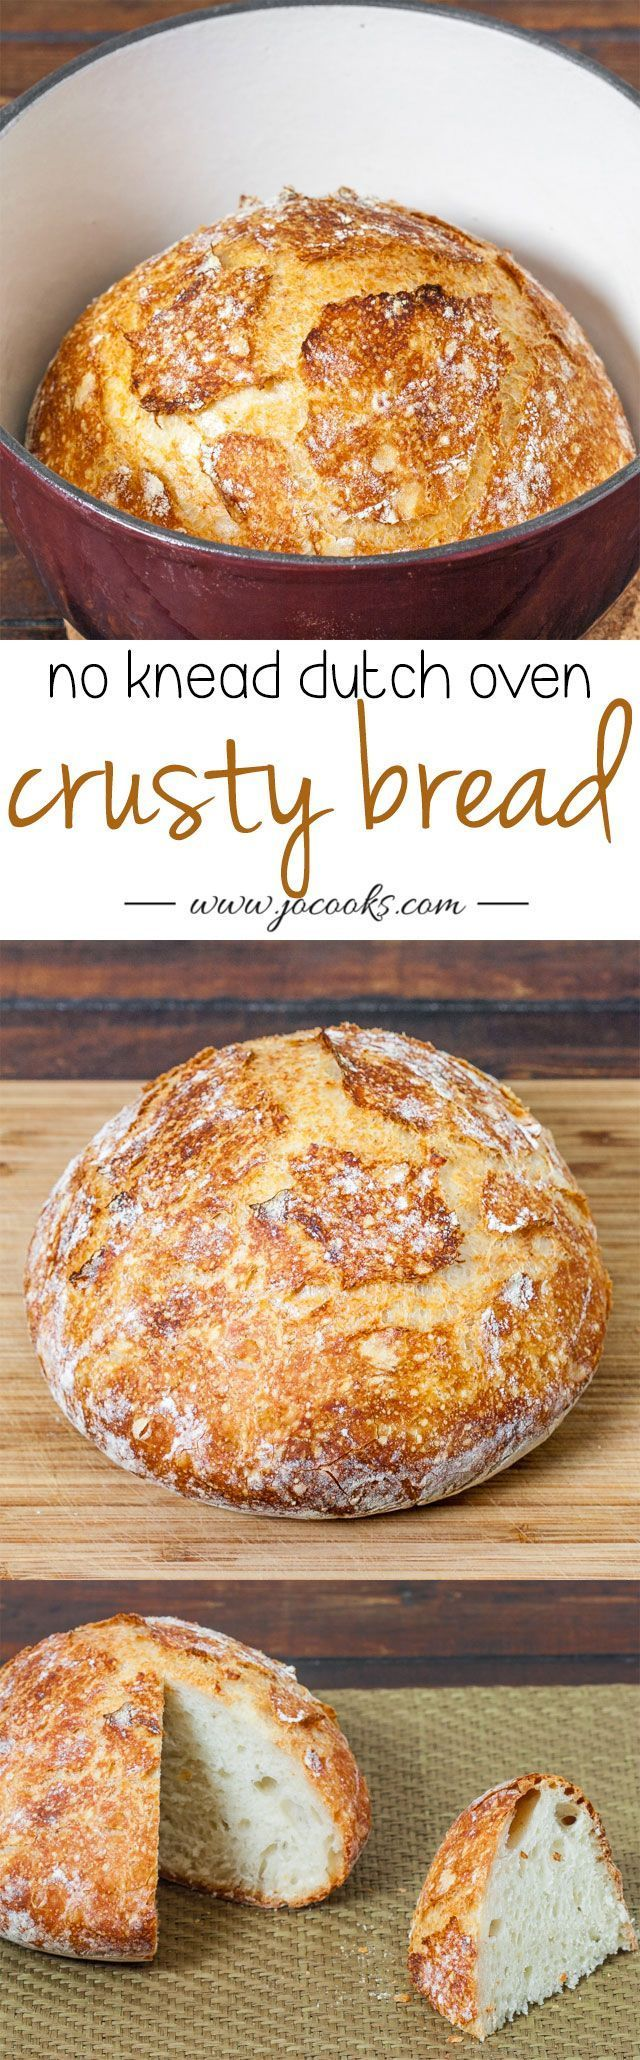 No Knead Dutch Oven Crusty Bread #bread #foodporn #dan330 http://livedan330.com/2015/02/01/no-knead-dutch-oven-crusty-bread/